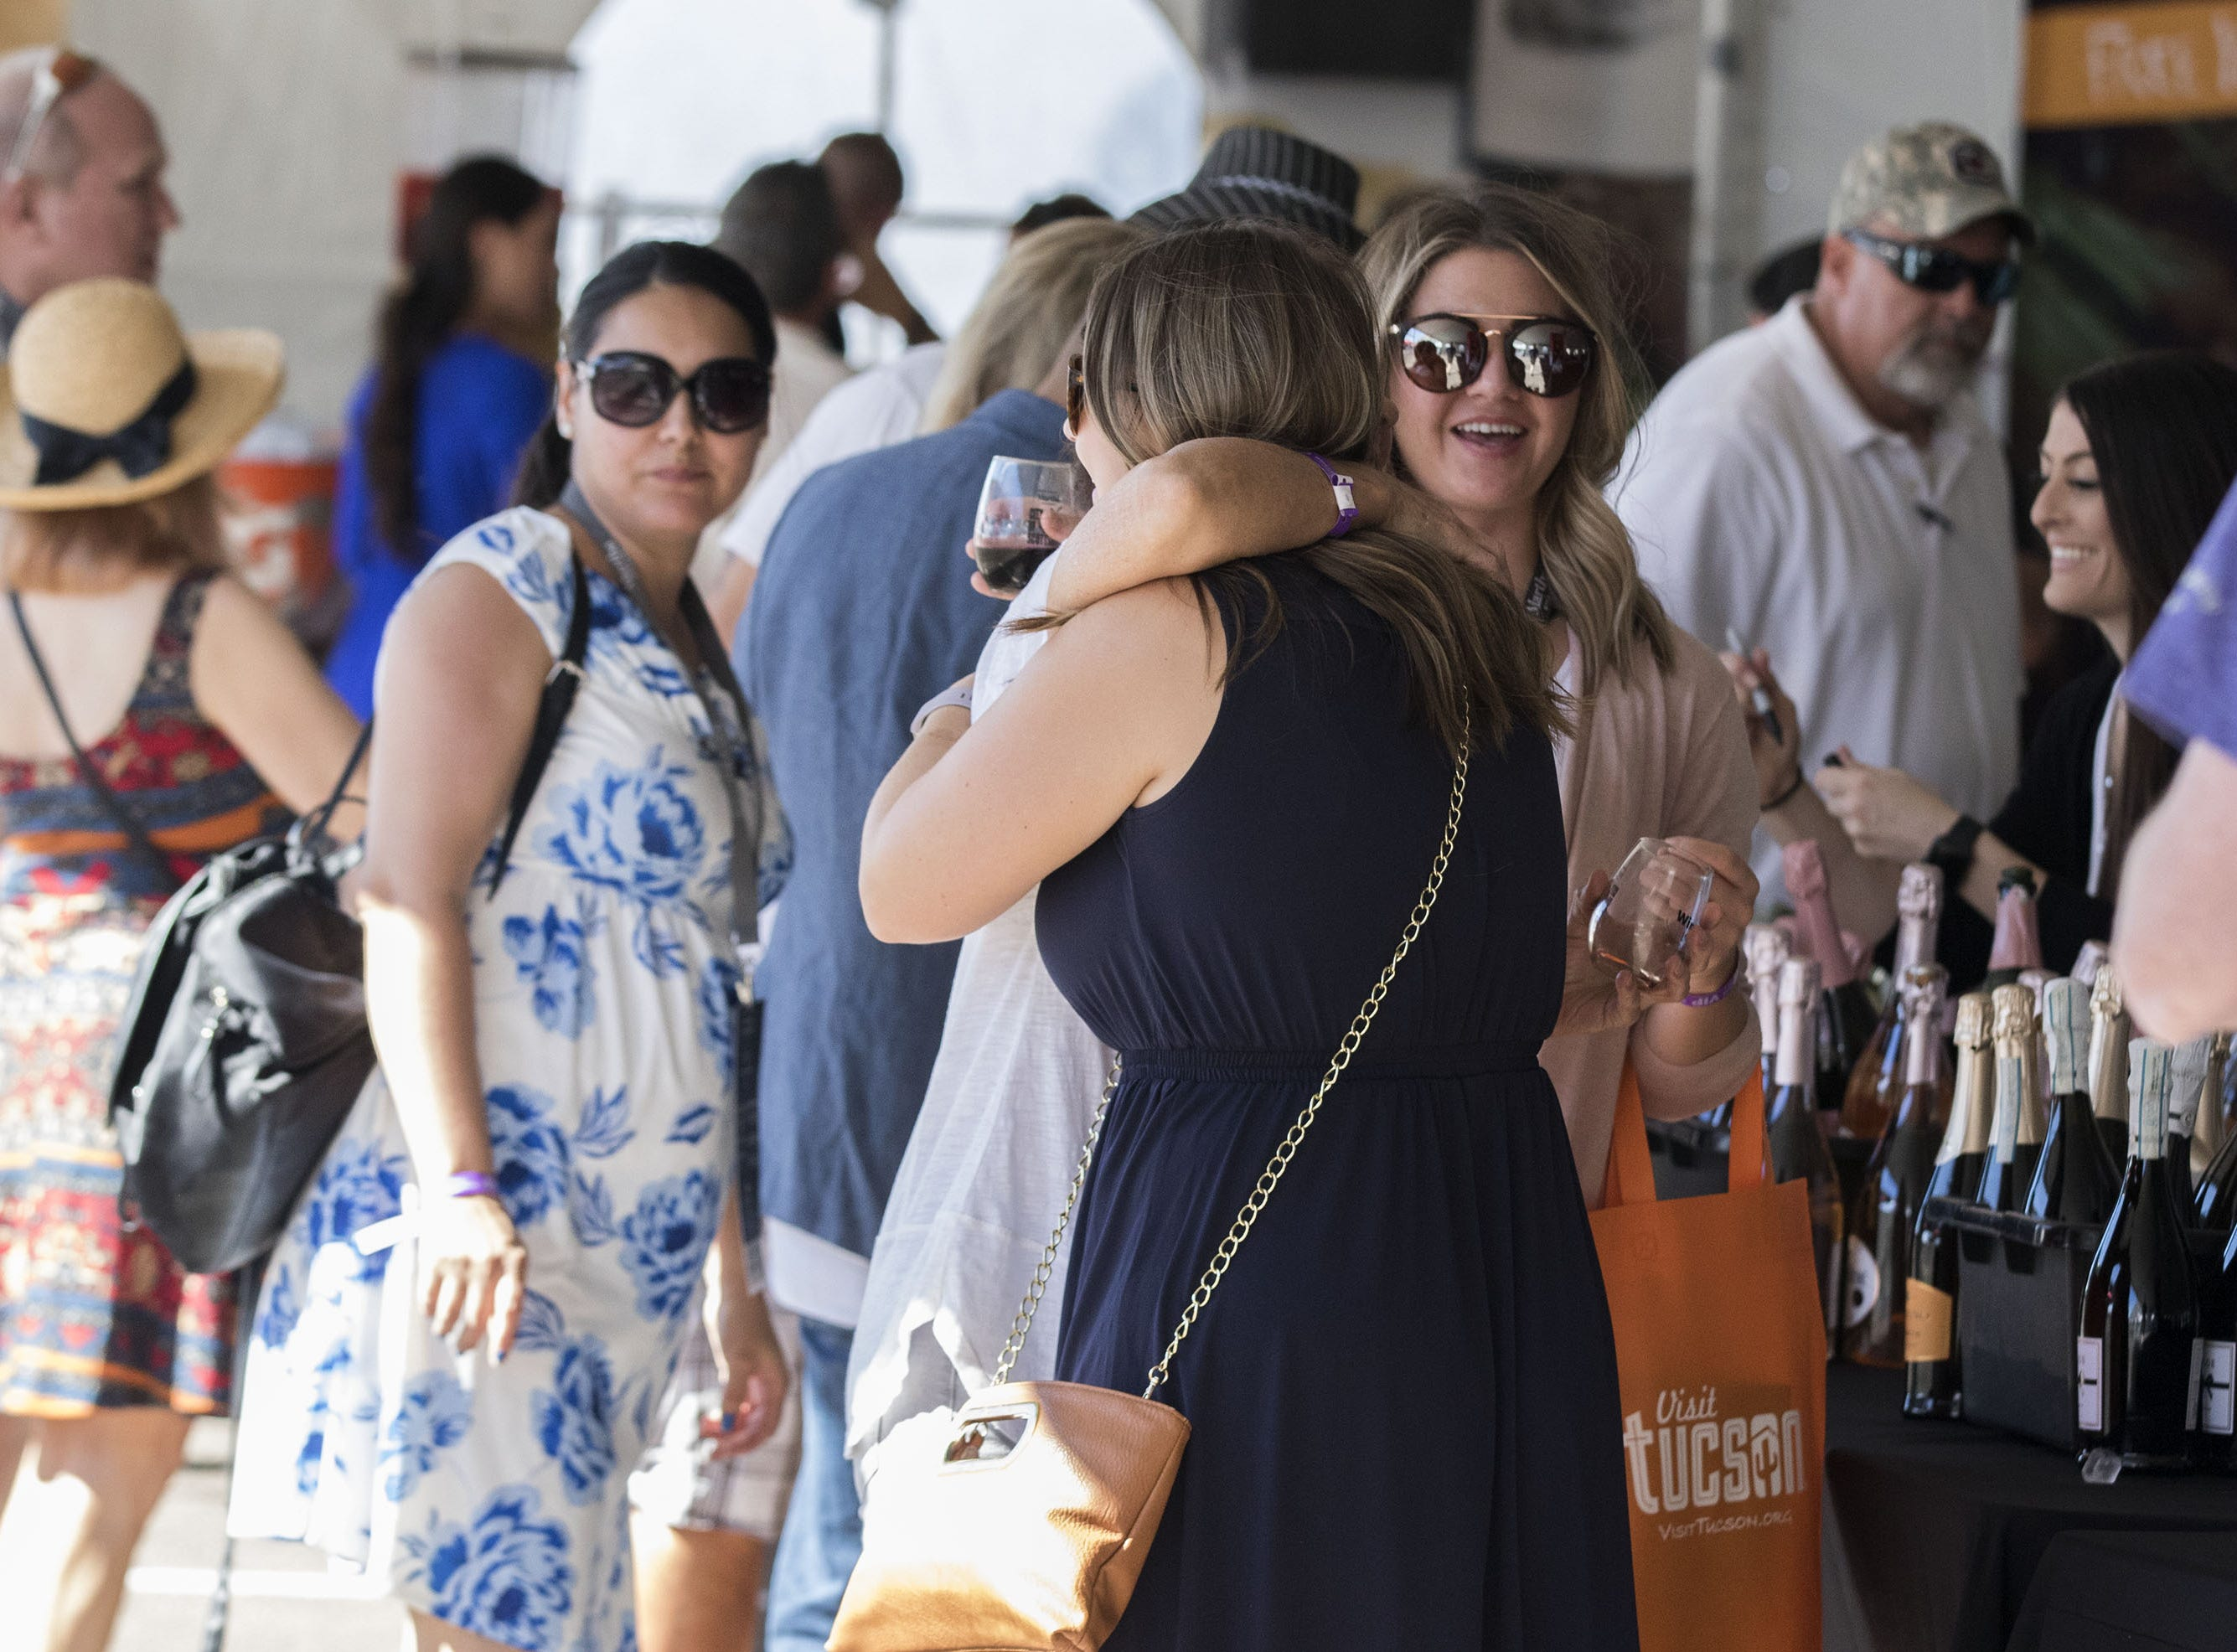 Friends hug during the azcentral Wine & Food Experience at WestWorld of Scottsdale, Saturday, Nov. 3, 2018.